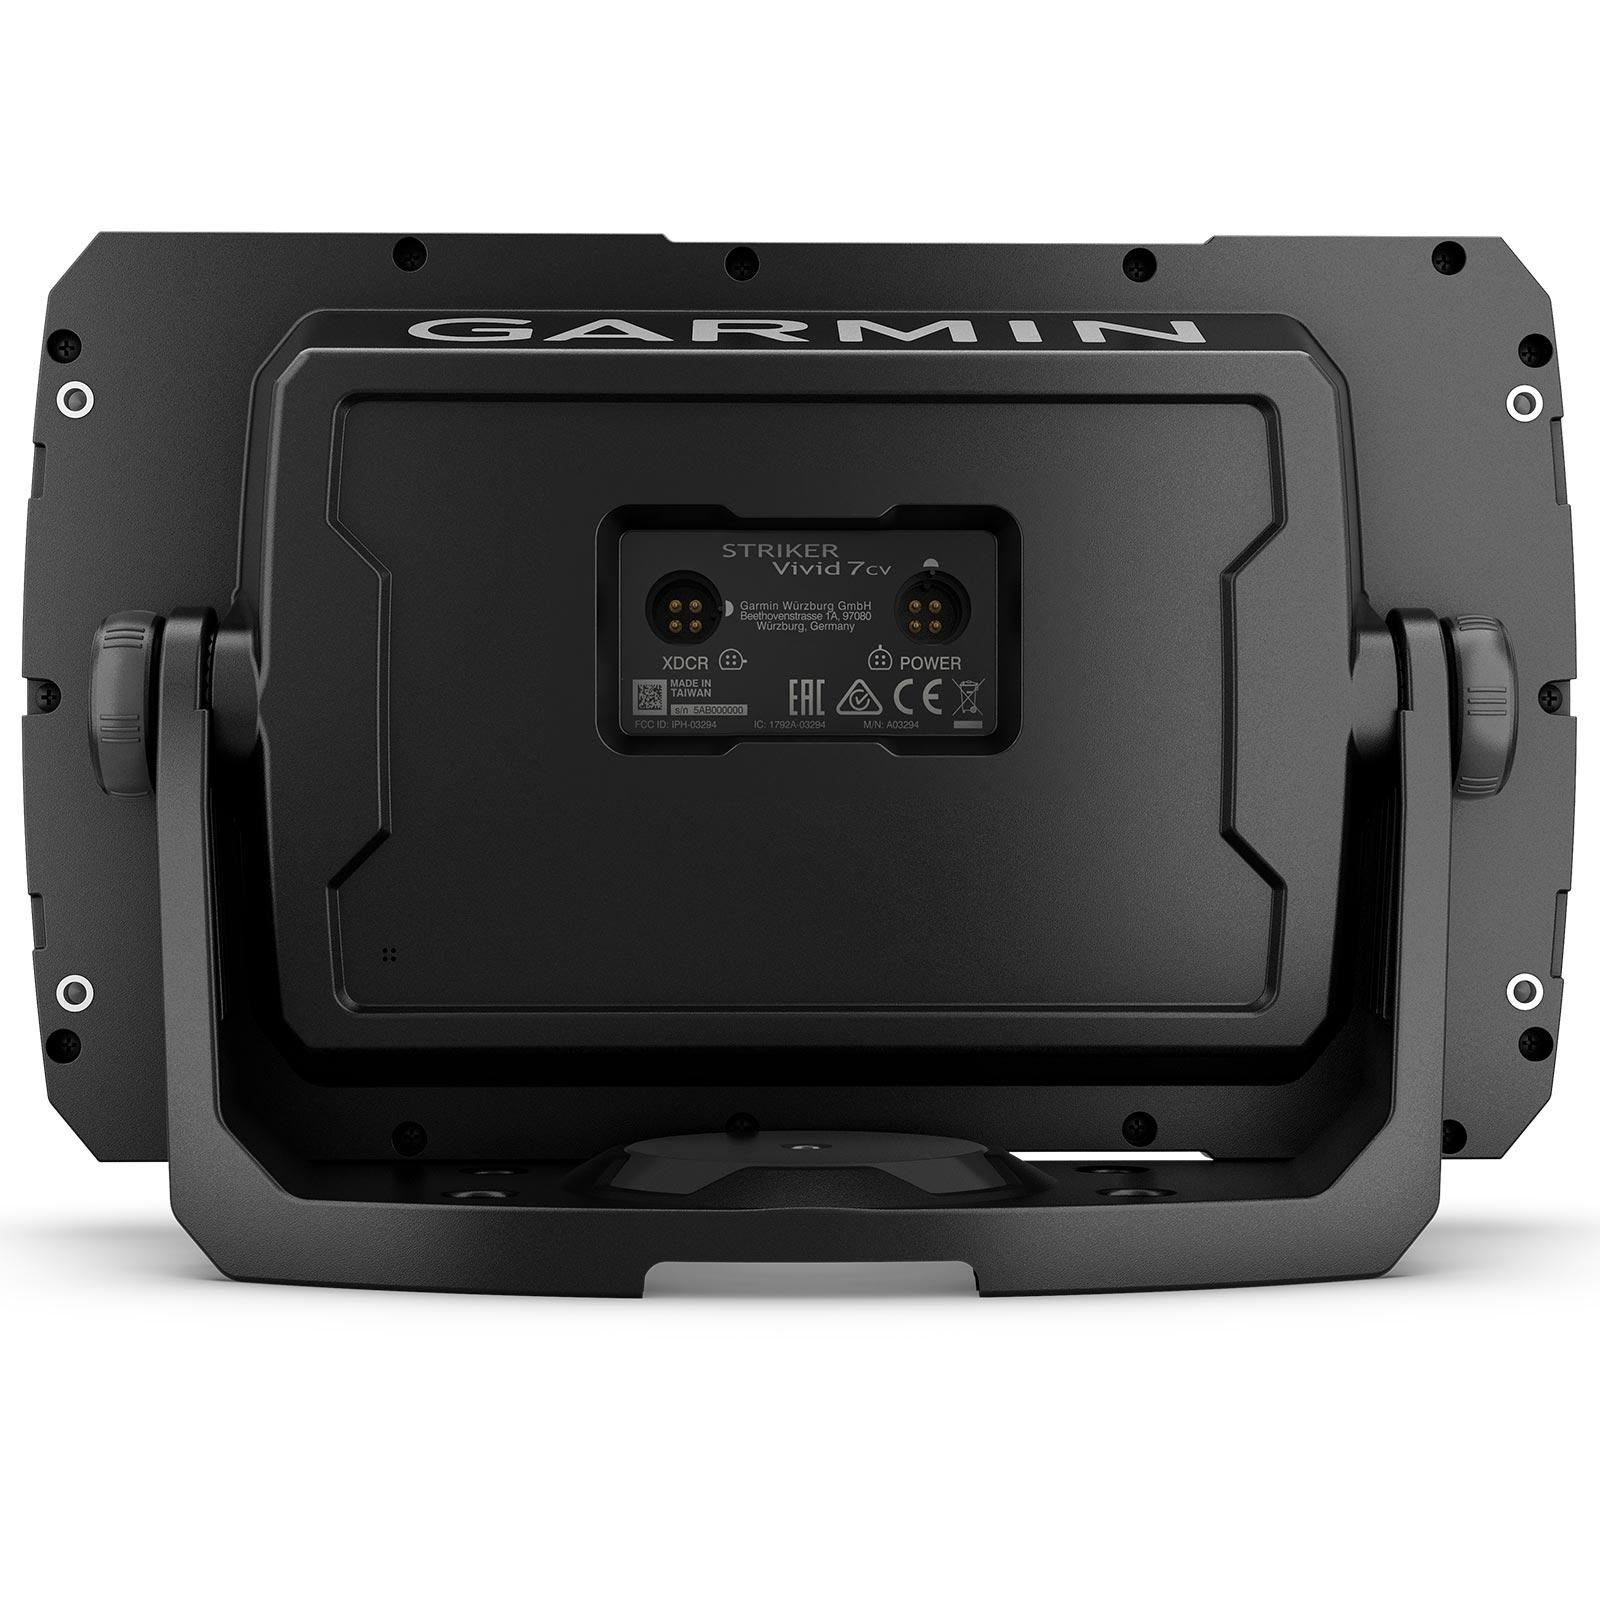 Garmin STRIKER Vivid 7cv with GT20-TM Transducer Back